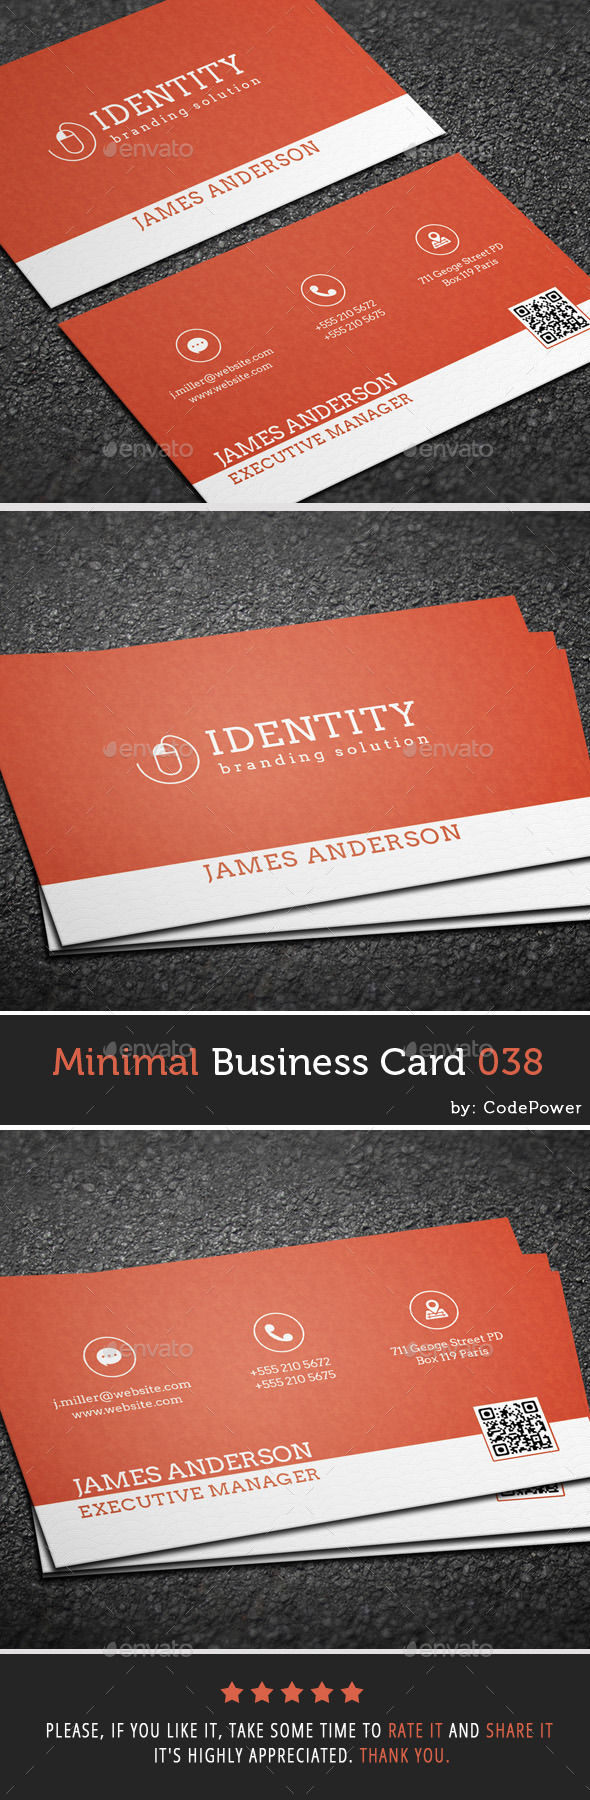 GraphicRiver Minimal Business Card 038 8818102